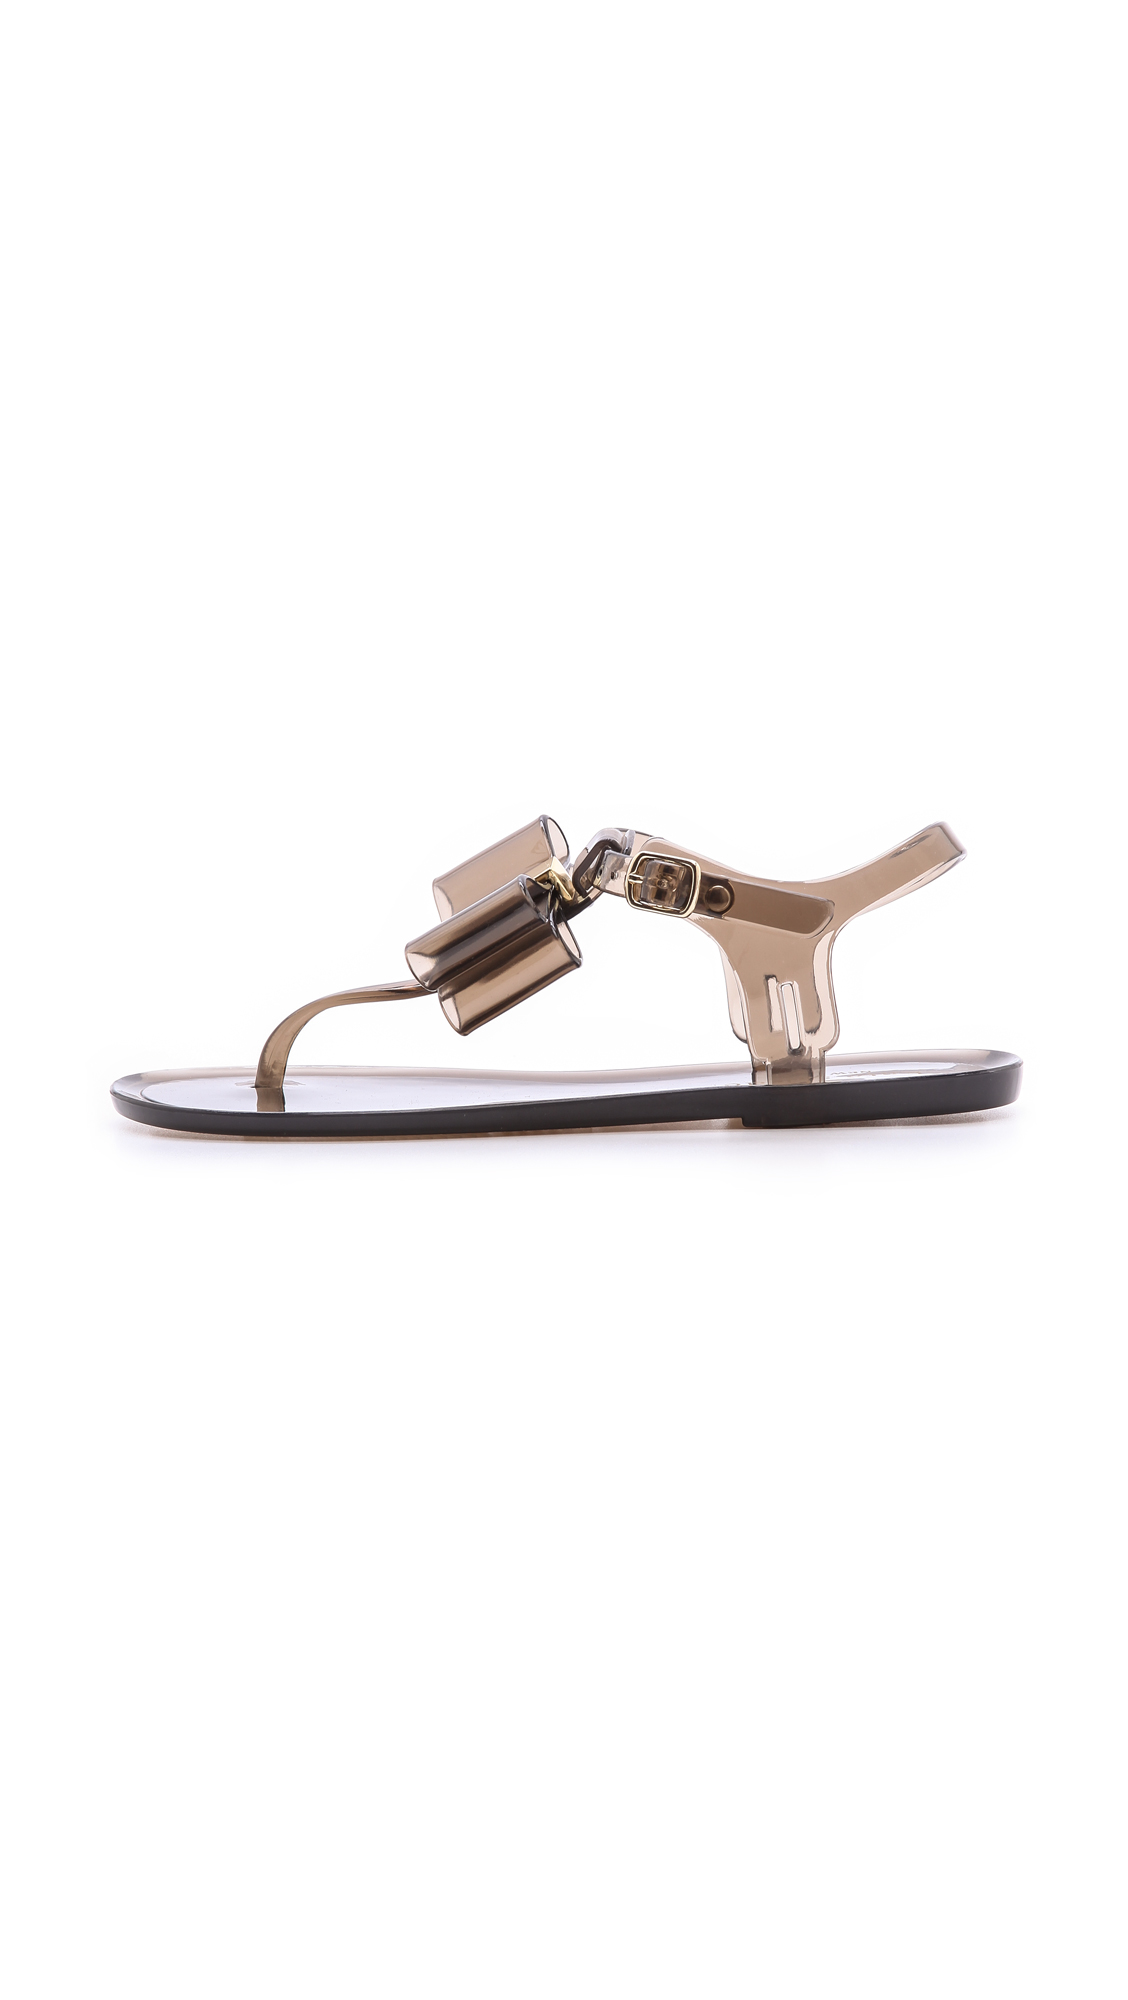 a07e3ce3f Kate Spade New York Filo Jelly Thong Sandals